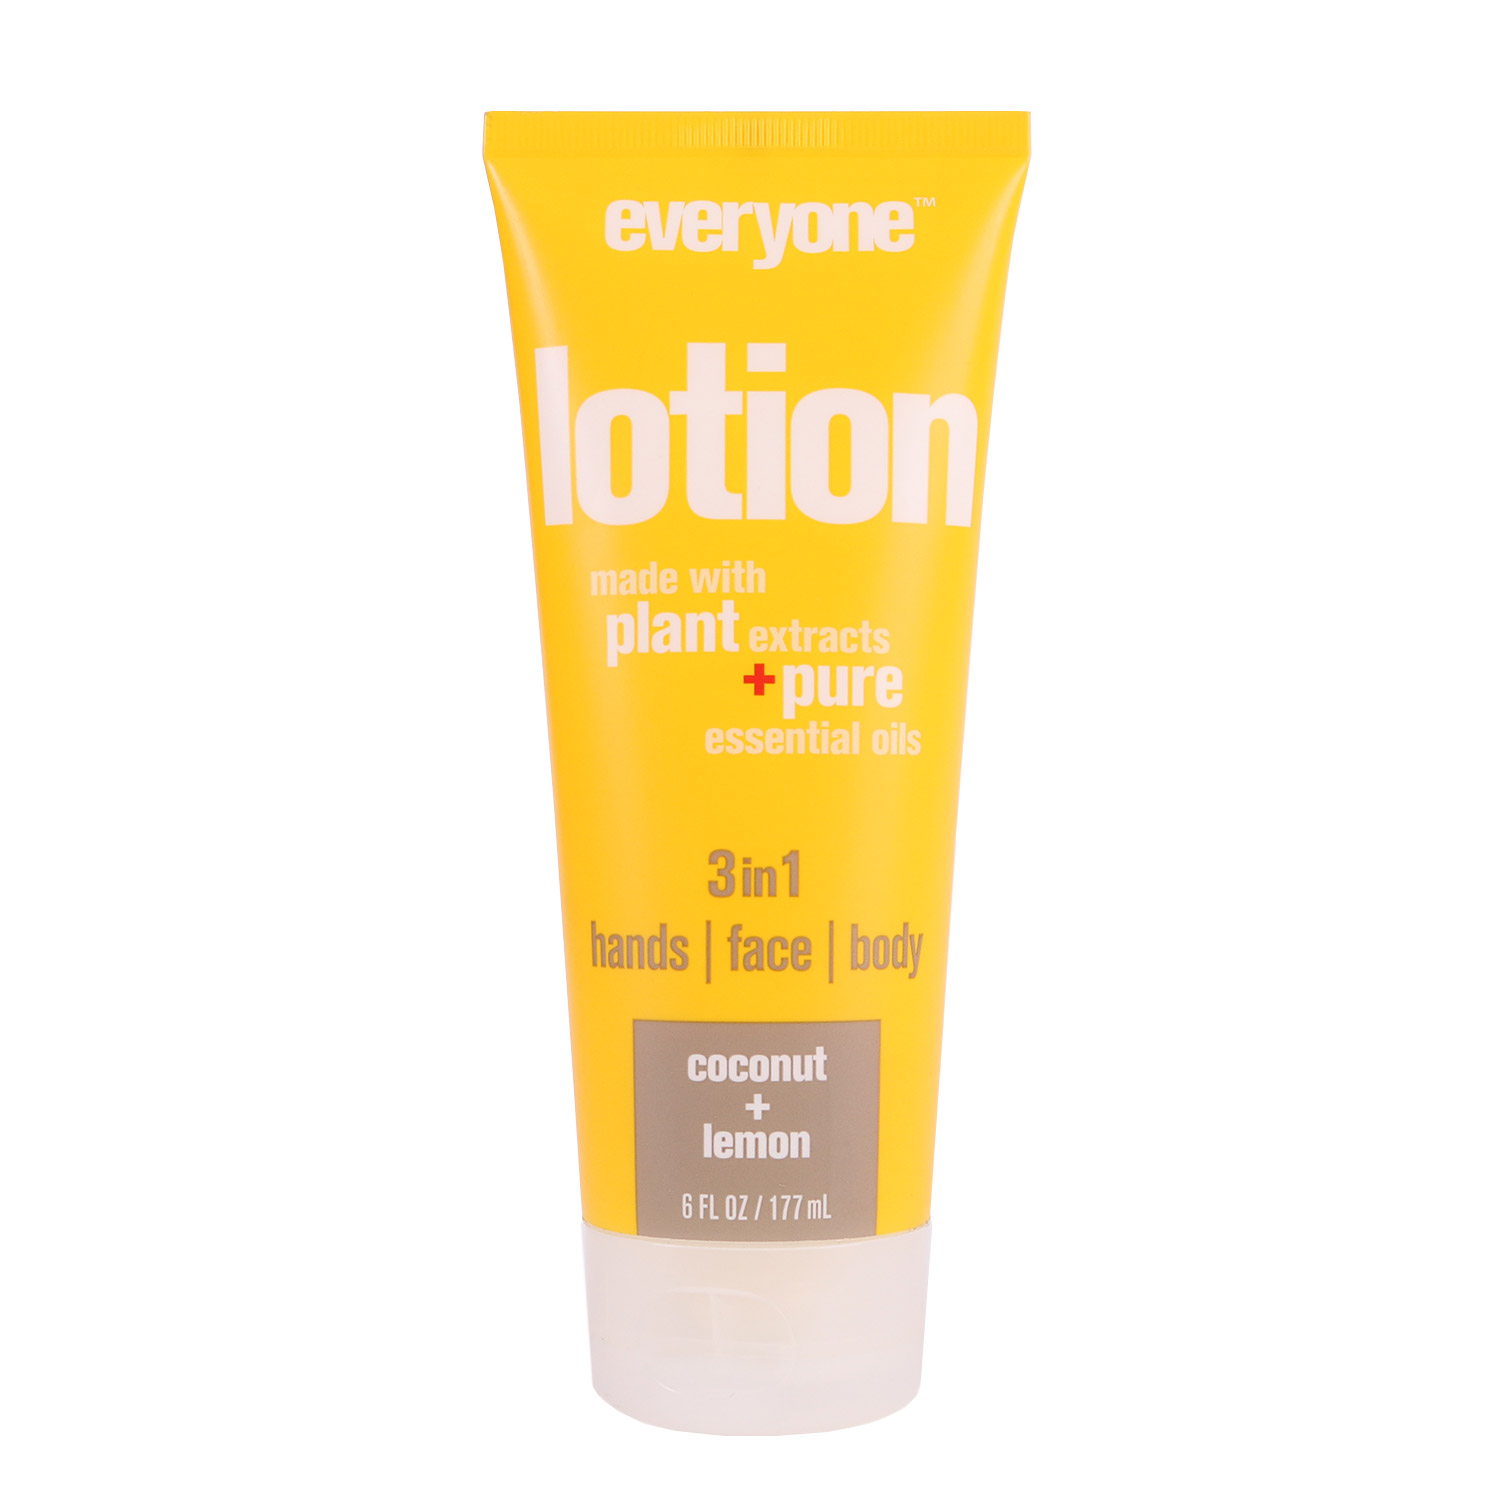 Lotion, Coconut Lemon